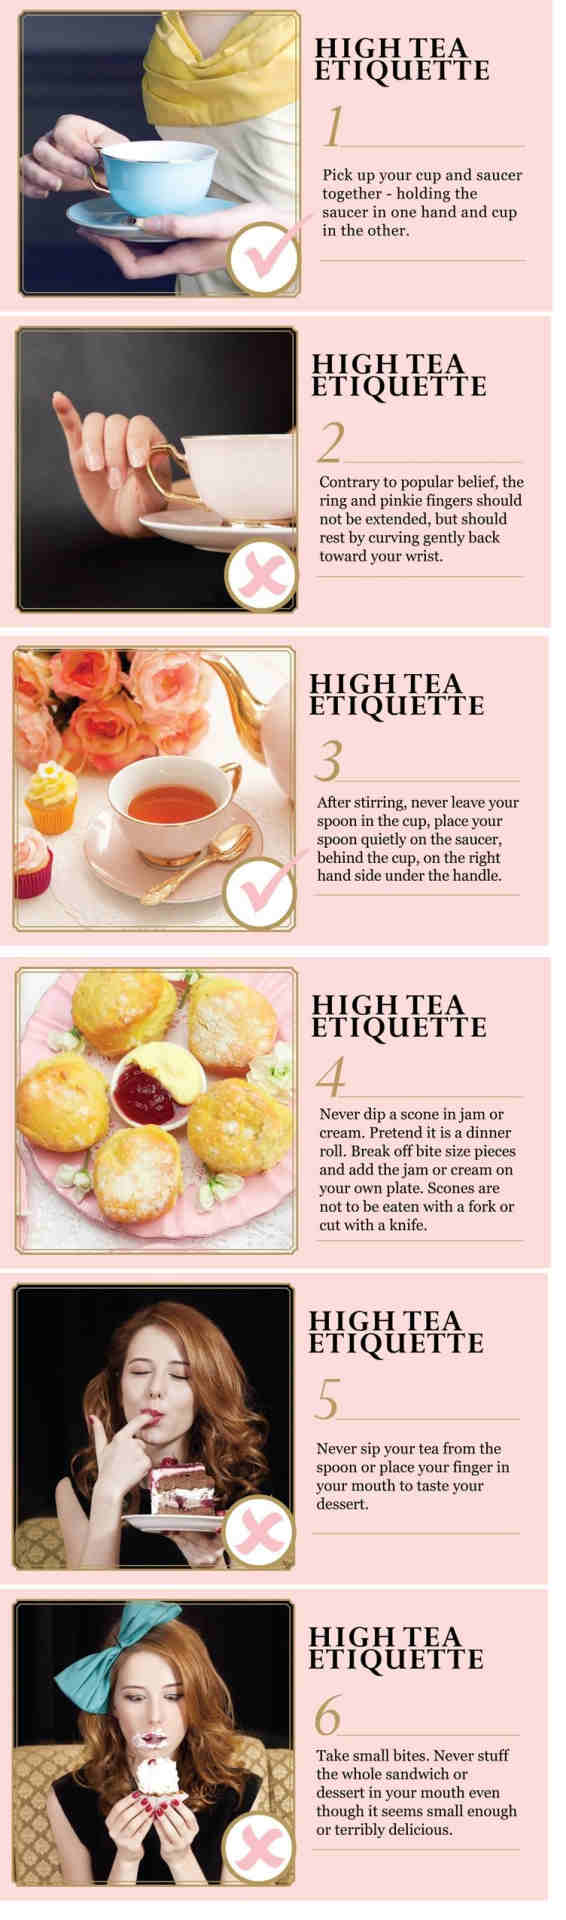 california-tea-house-high-tea-etiquette